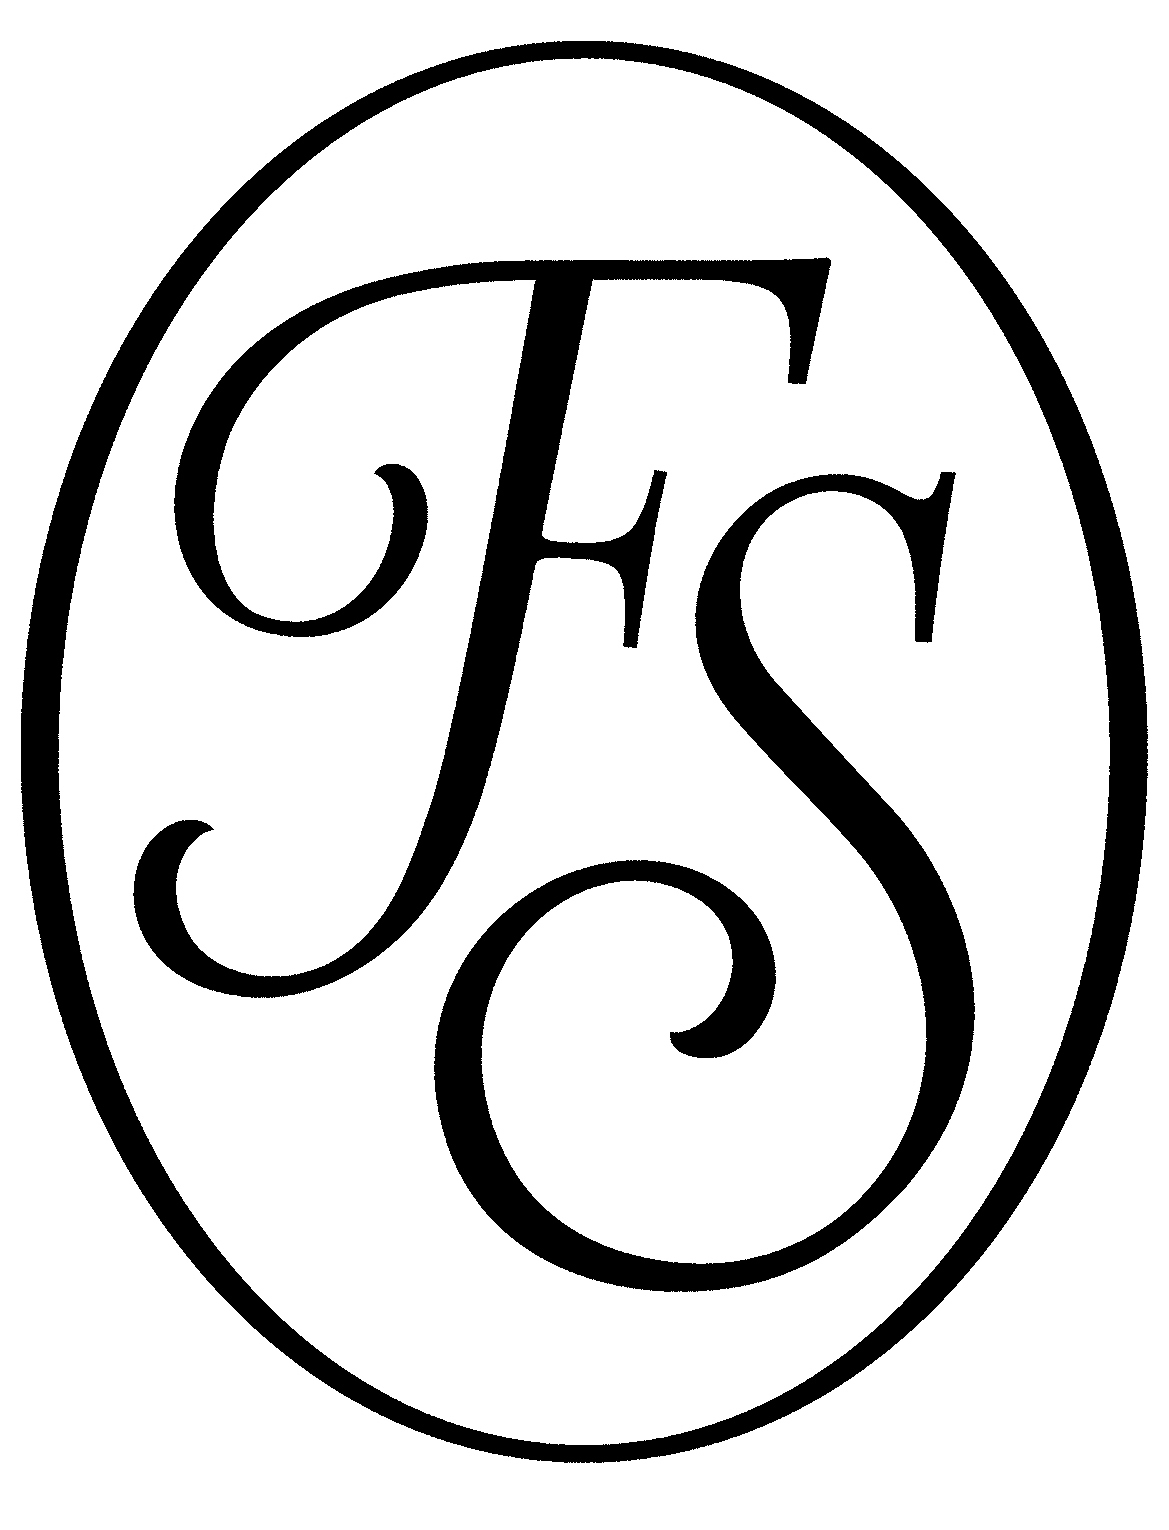 filefolio society logojpg wikimedia commons